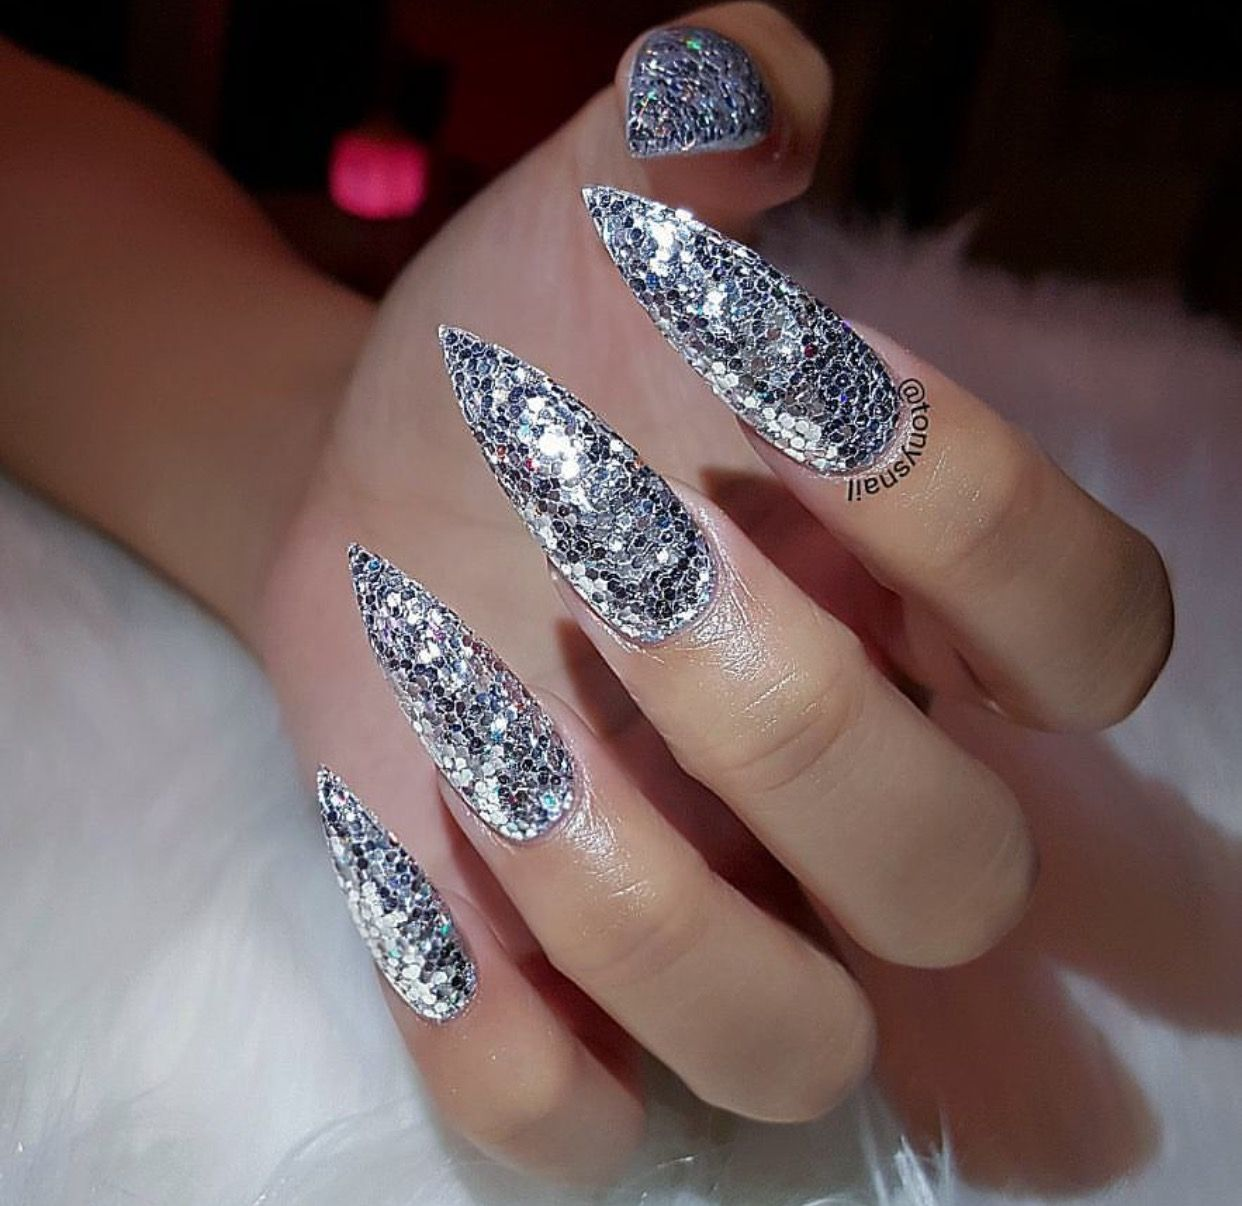 Custom long silver glitter stiletto nails | Nails | Pinterest ...